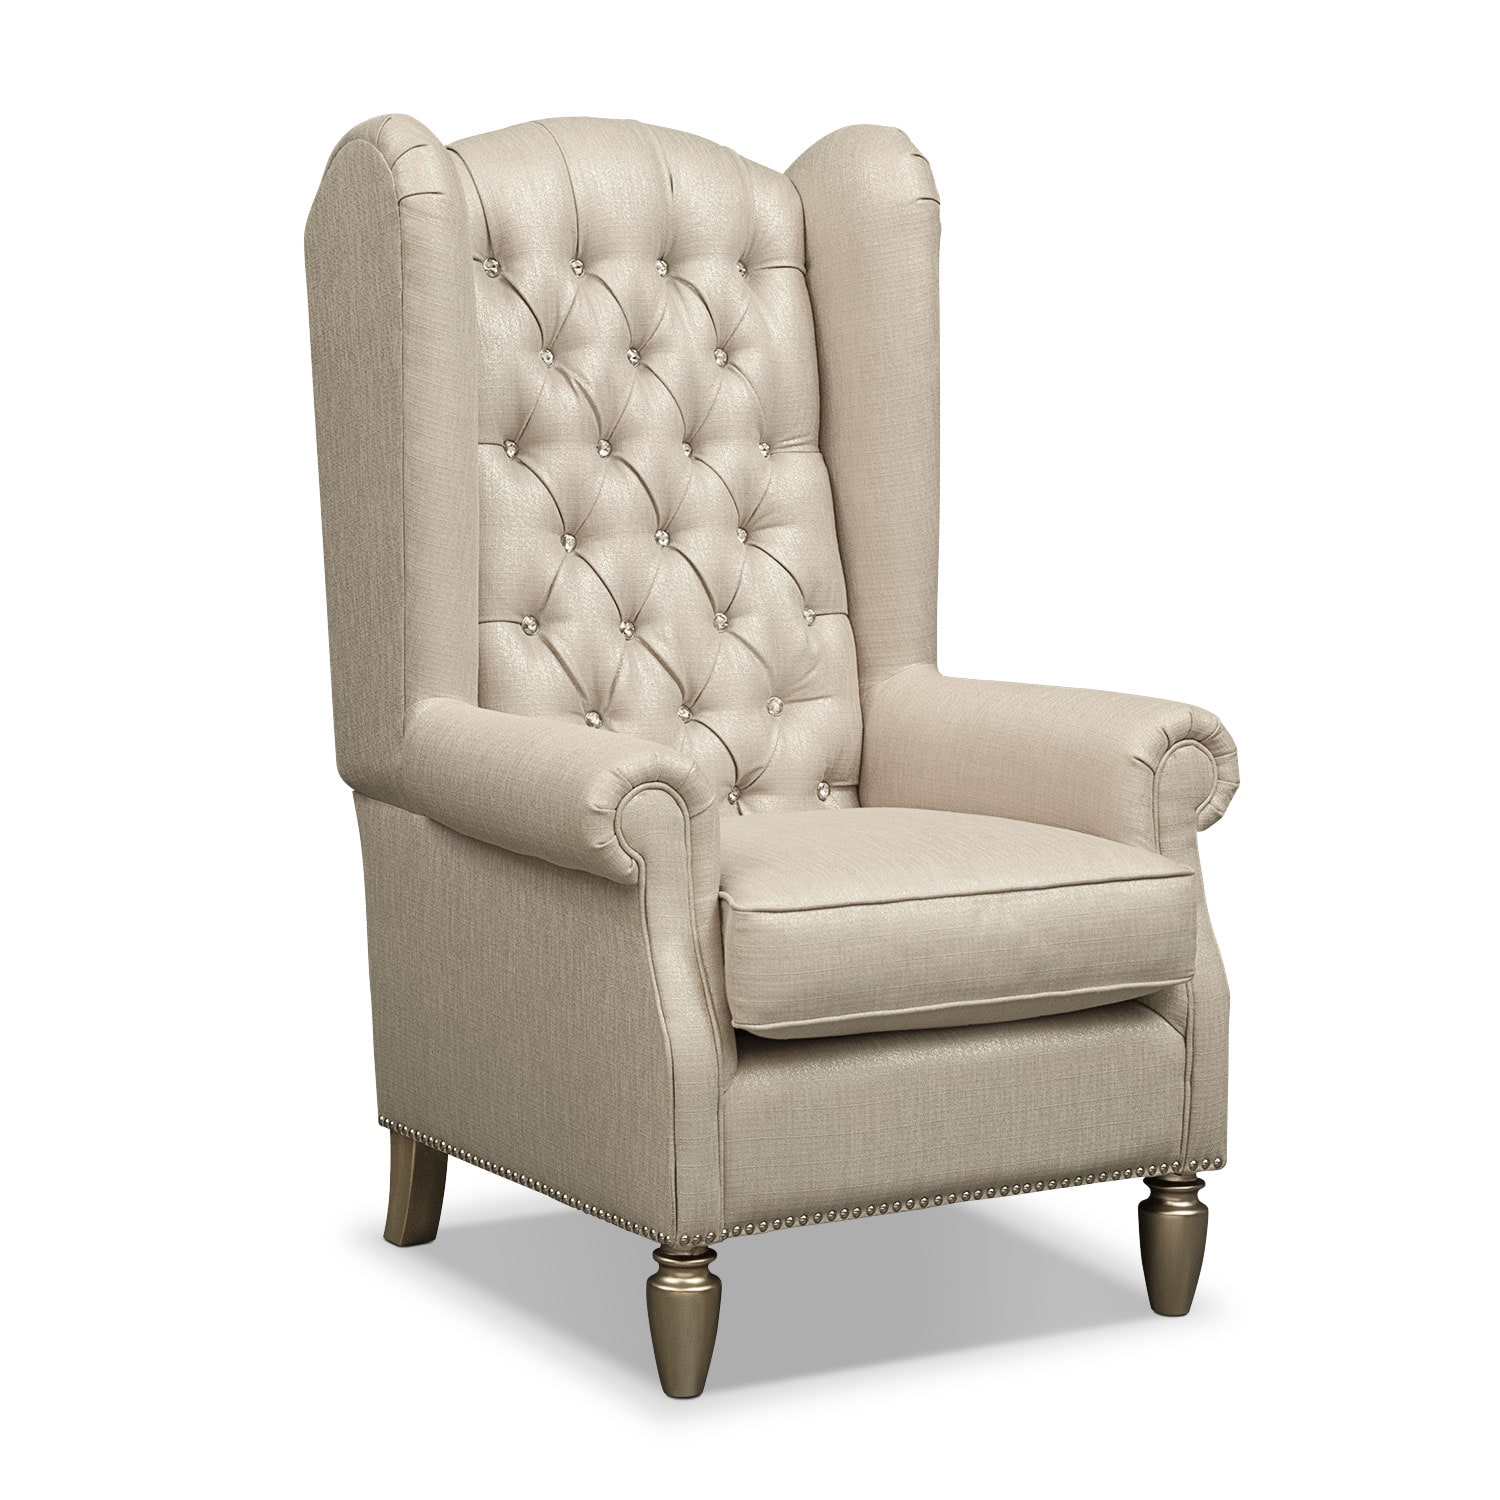 [Cleo Accent Chair]